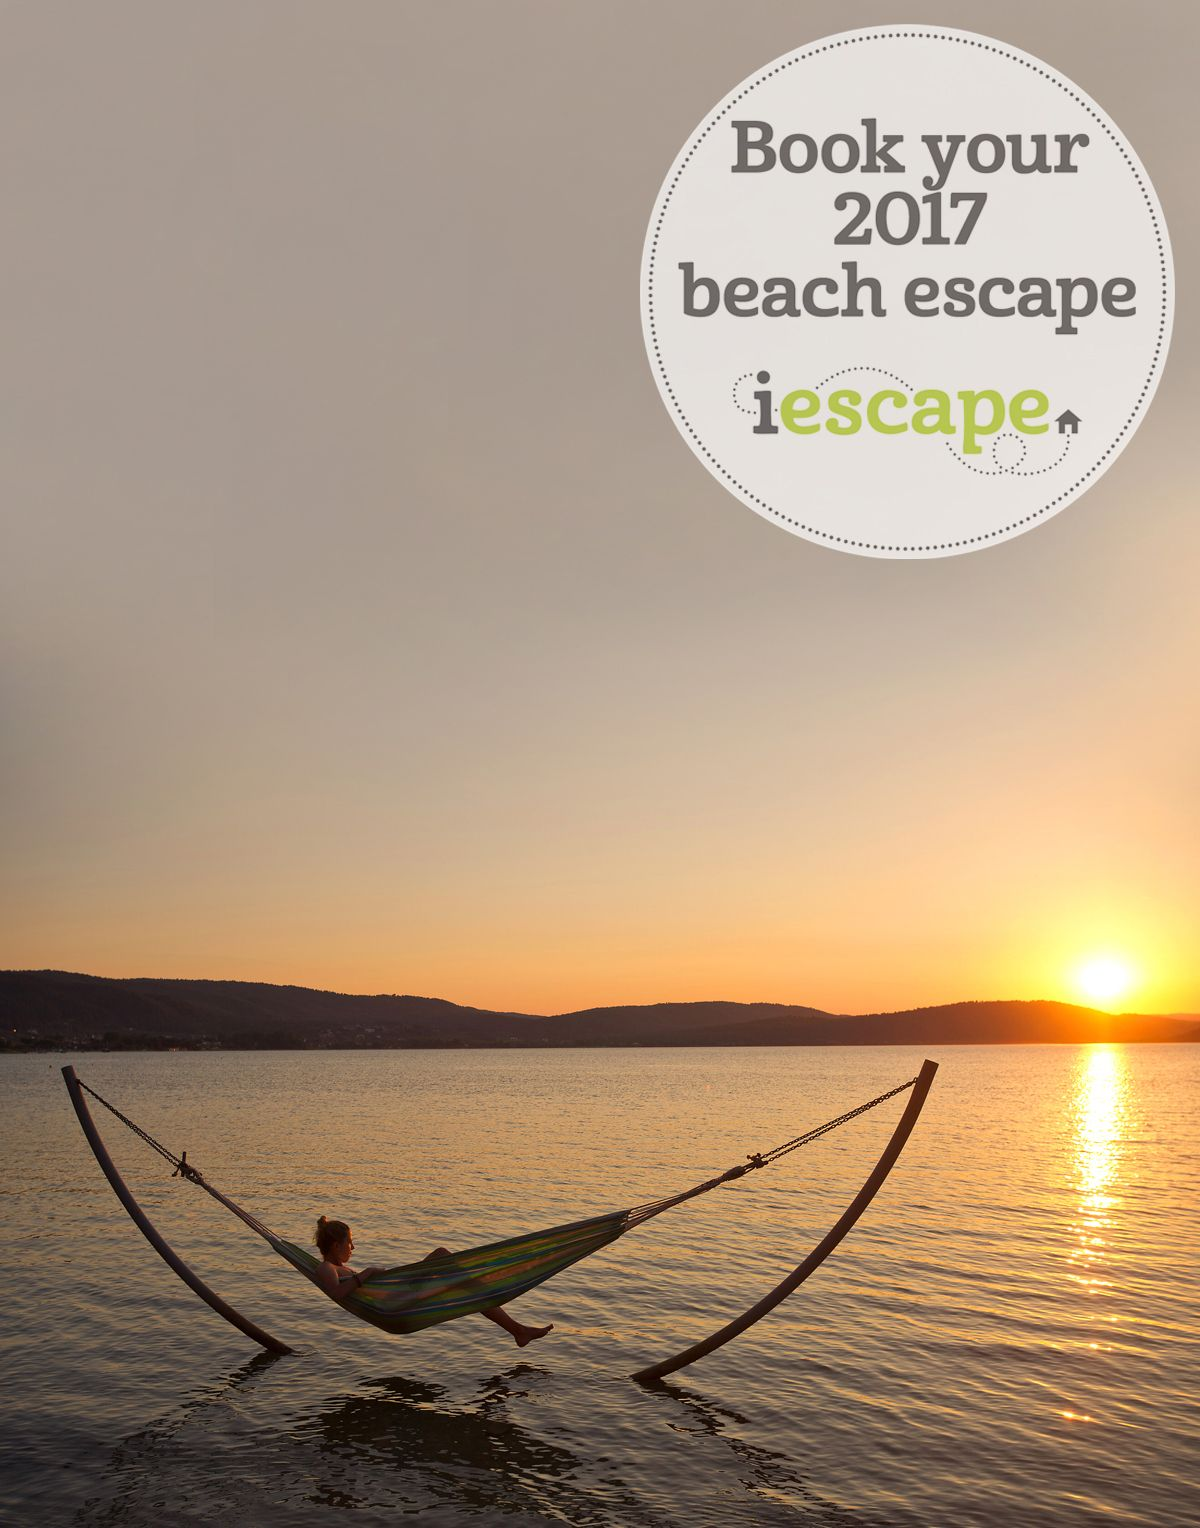 i-escape - find and book stylish beach resorts, villas and boutique hotels in more than 50 destinations, from the Mediterranean to Southeast Asia. Best rates guaranteed.